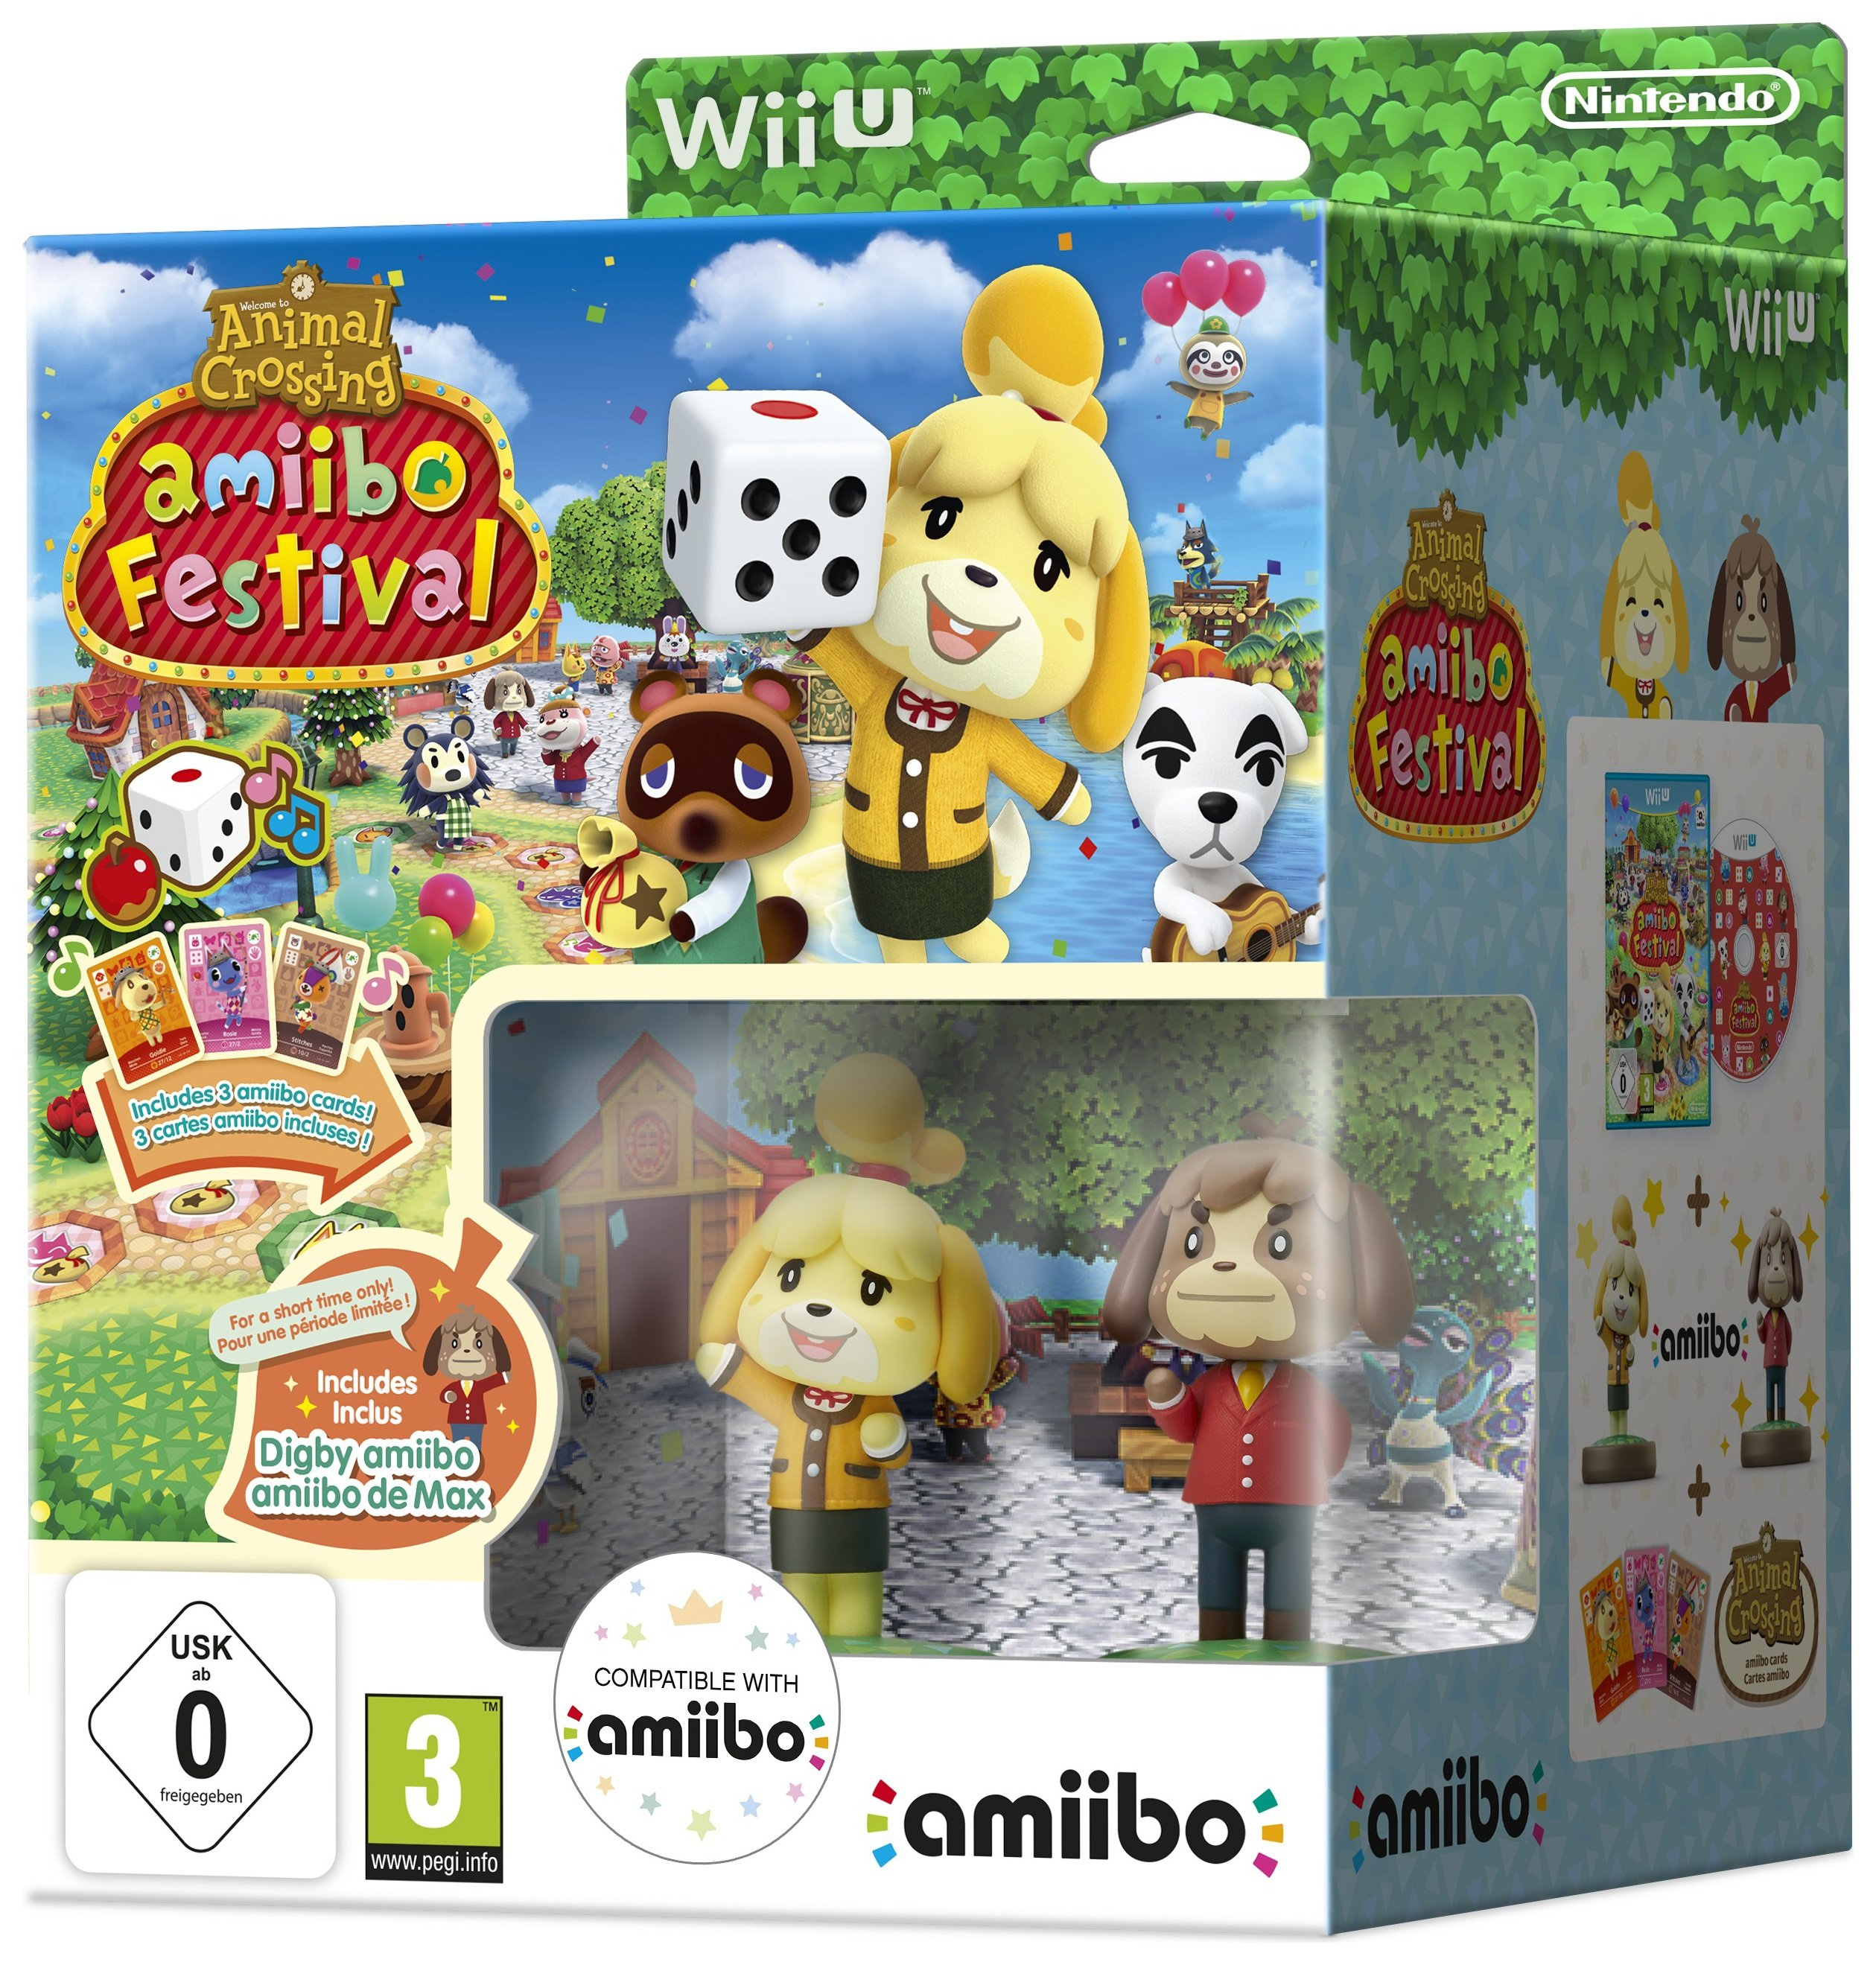 Animal Crossing Animal Crossing - Amiibo Festival - Wii U Game